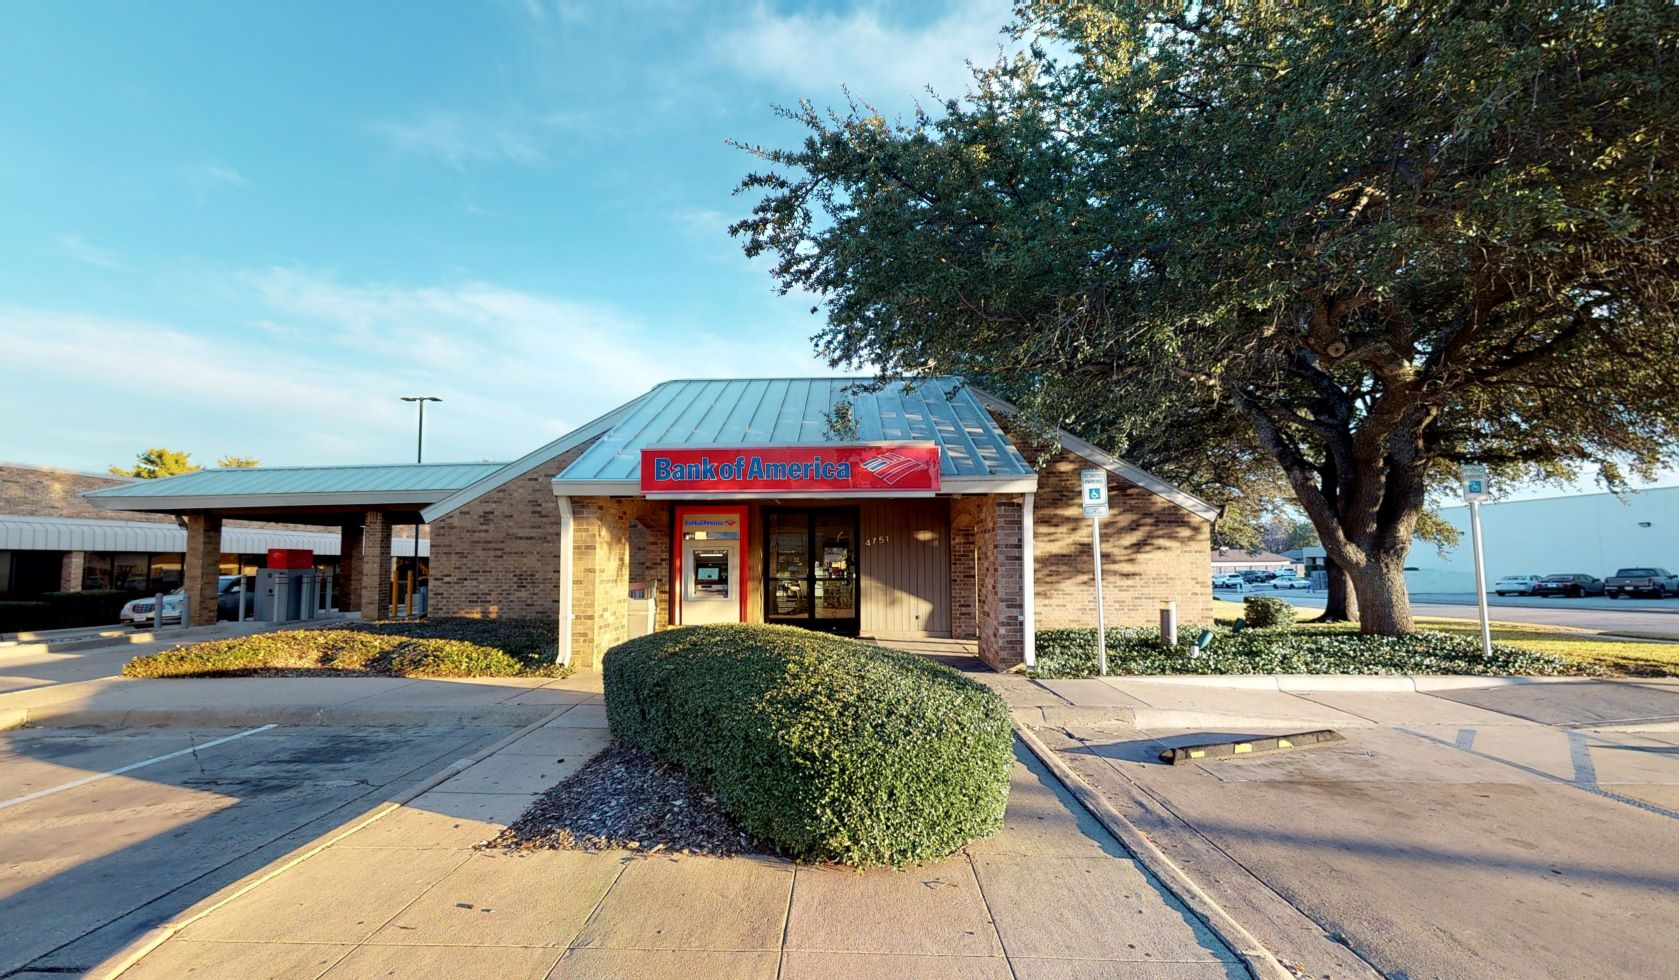 Bank of America financial center with drive-thru ATM | 4751 S Hulen St, Fort Worth, TX 76132